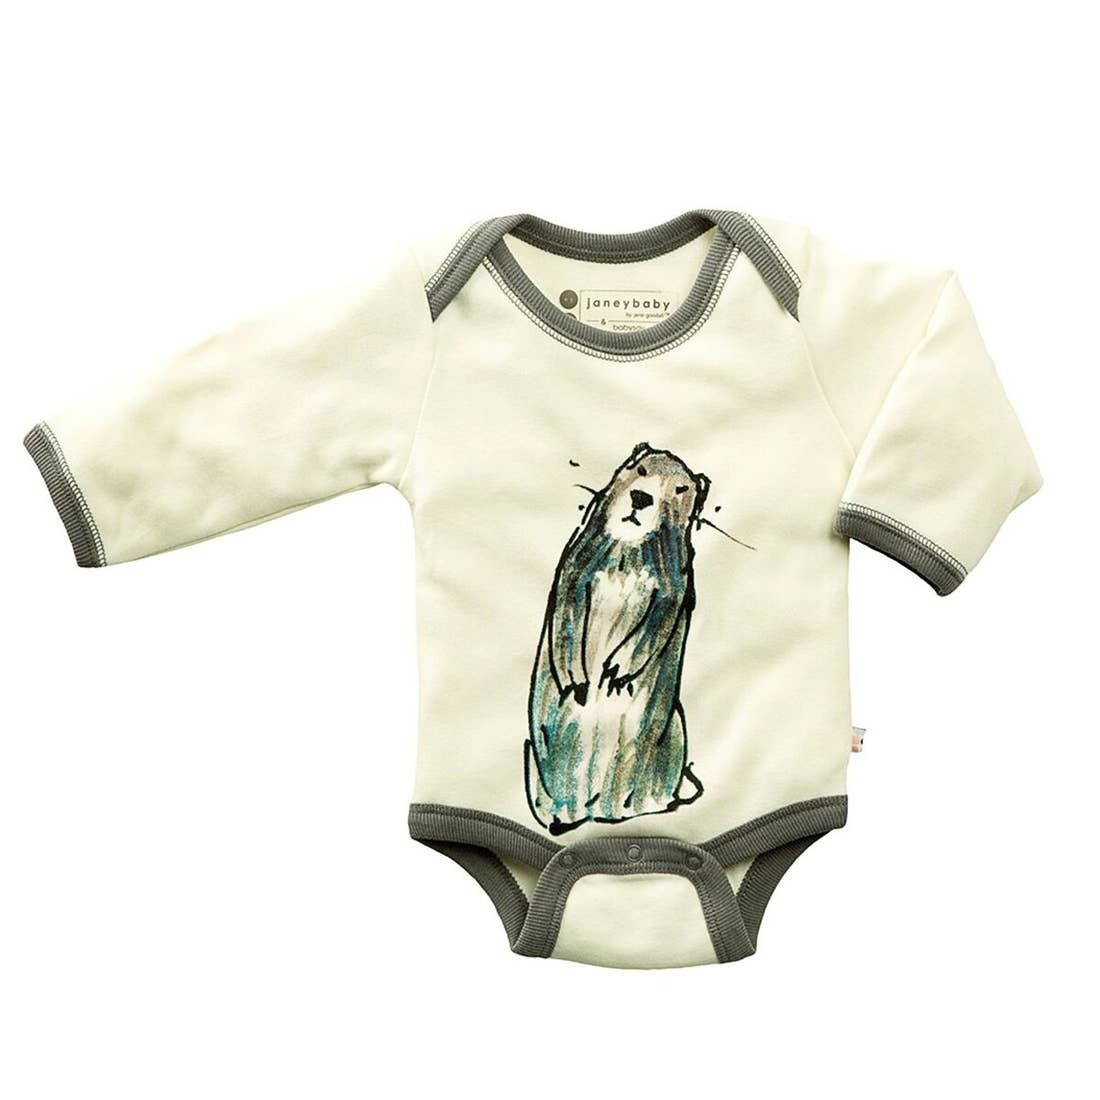 Babysoy Janey Baby Goodall Animal Bodysuit- Marmot